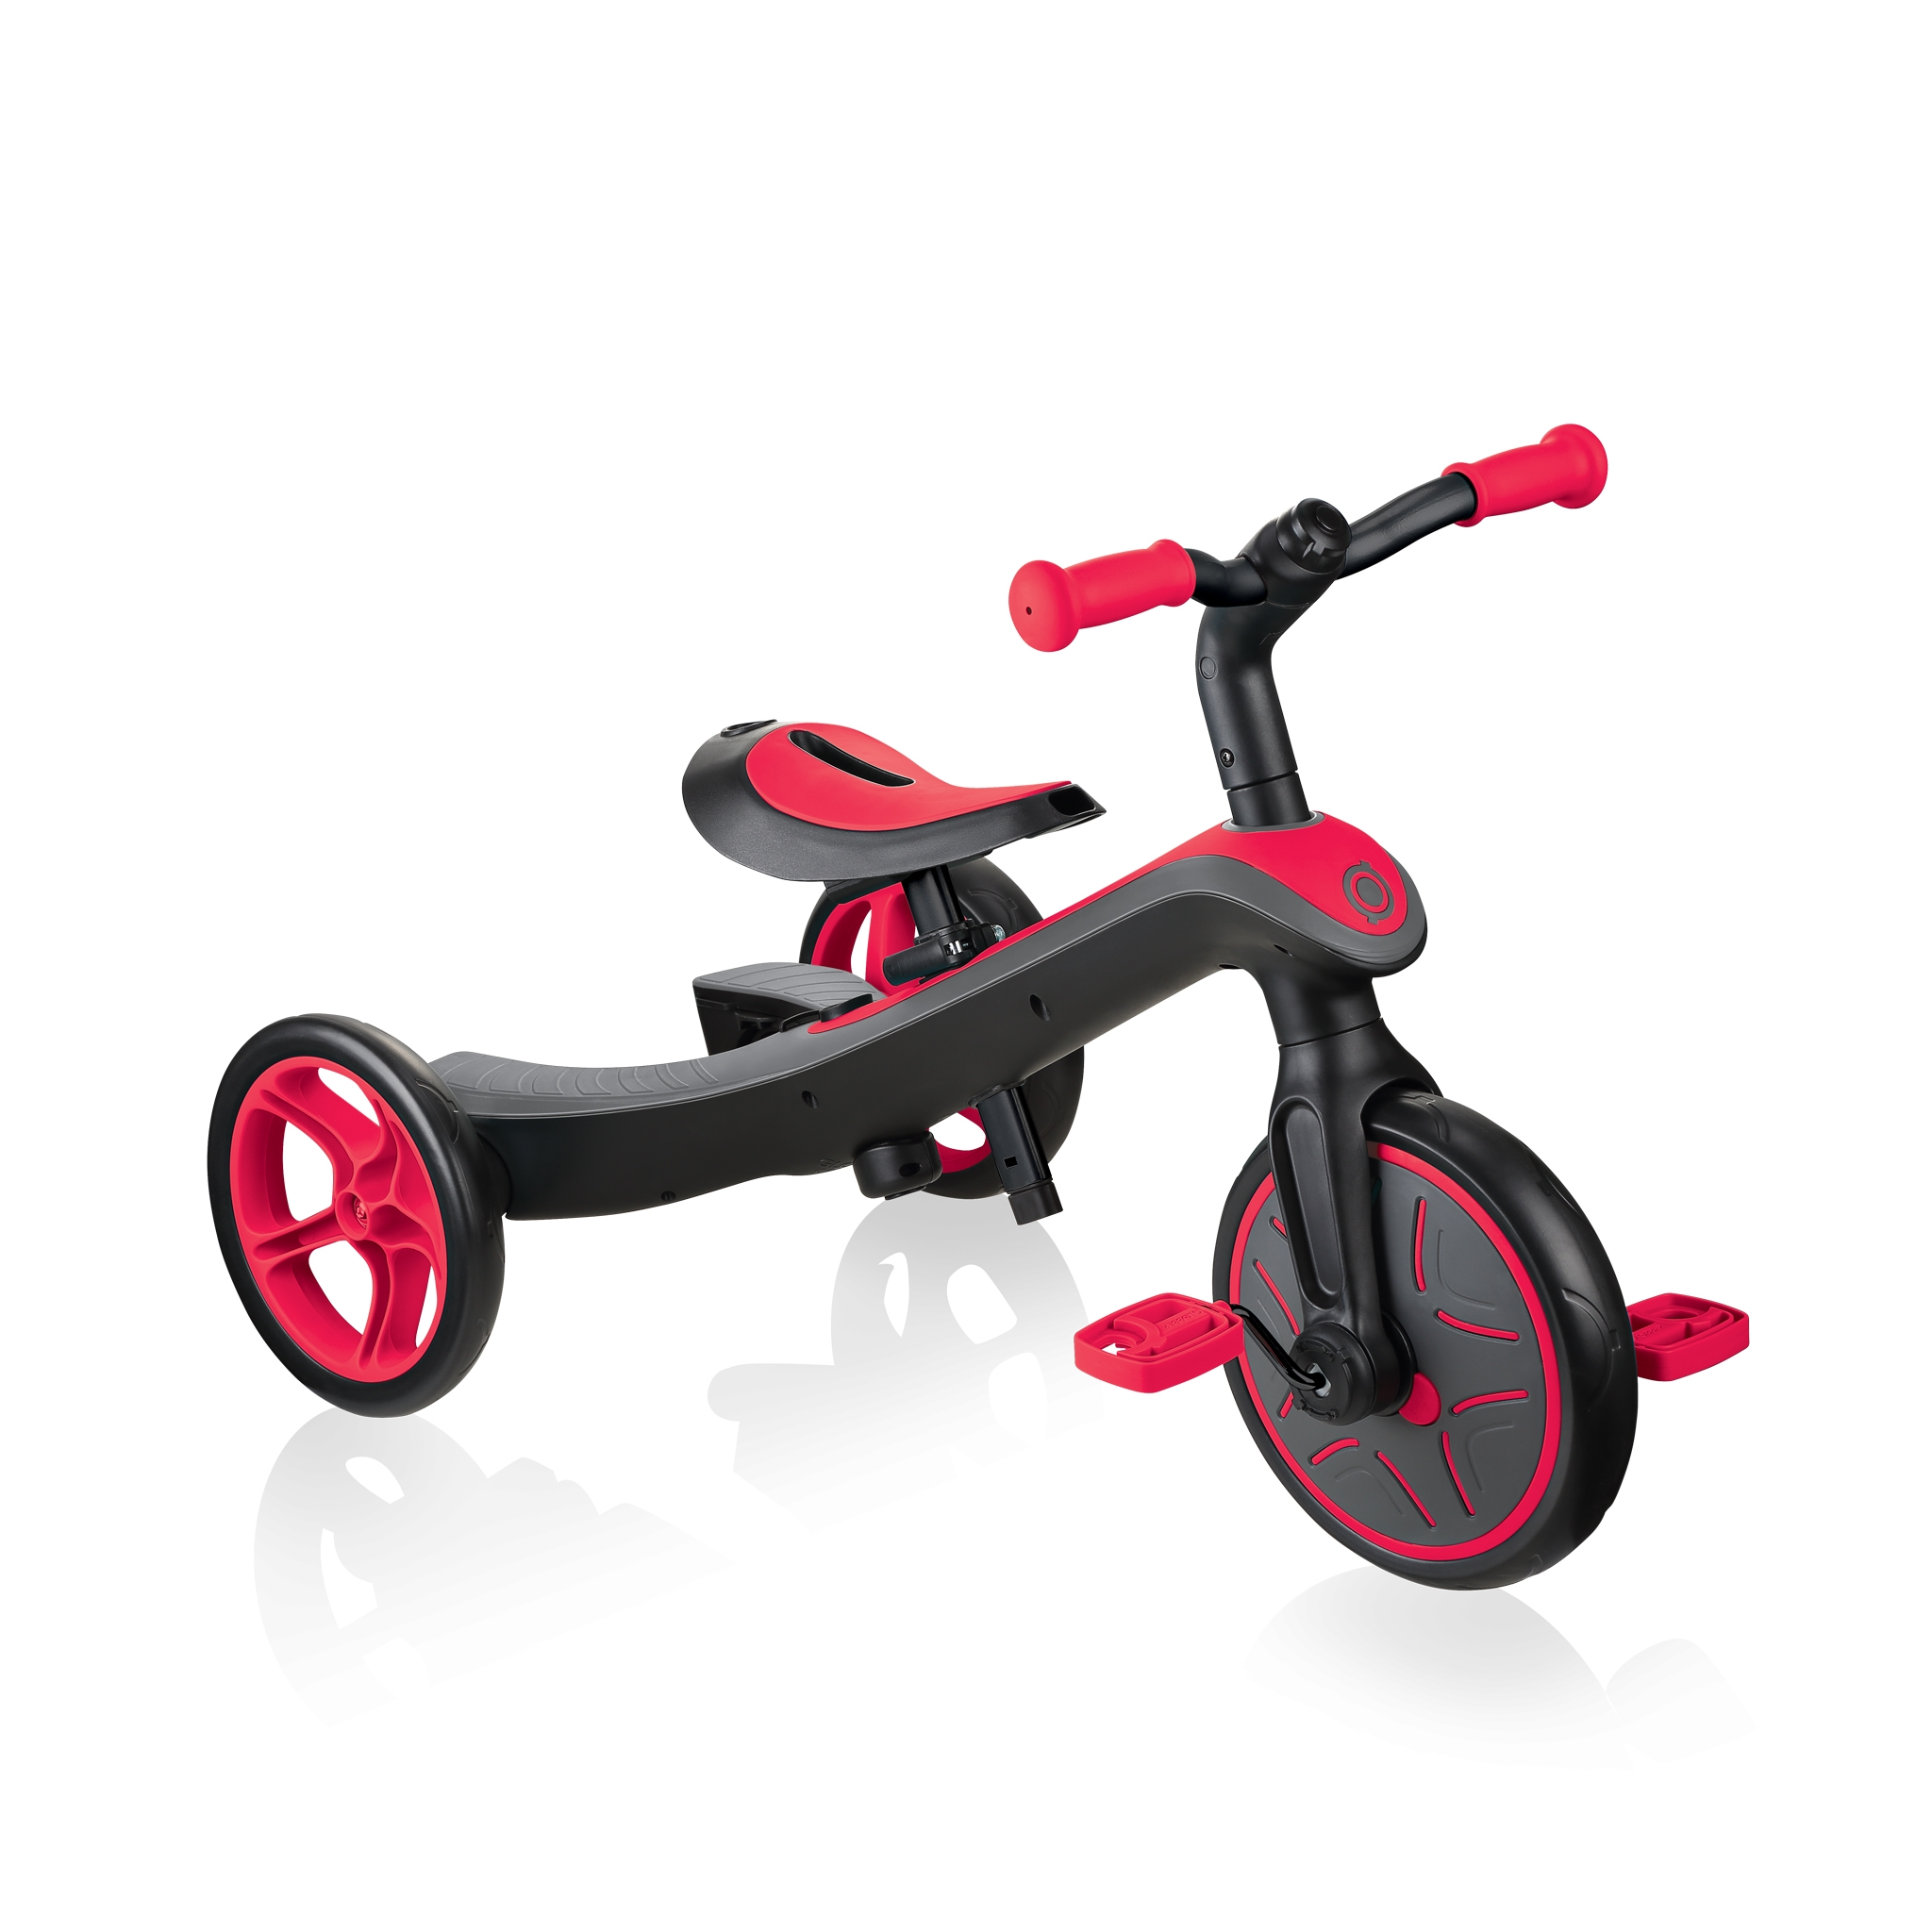 Globber-EXPLORER-TRIKE-2in1-all-in-one-training-tricycle-and-kids-balance-bike-stage1-training-trike_new-red 0